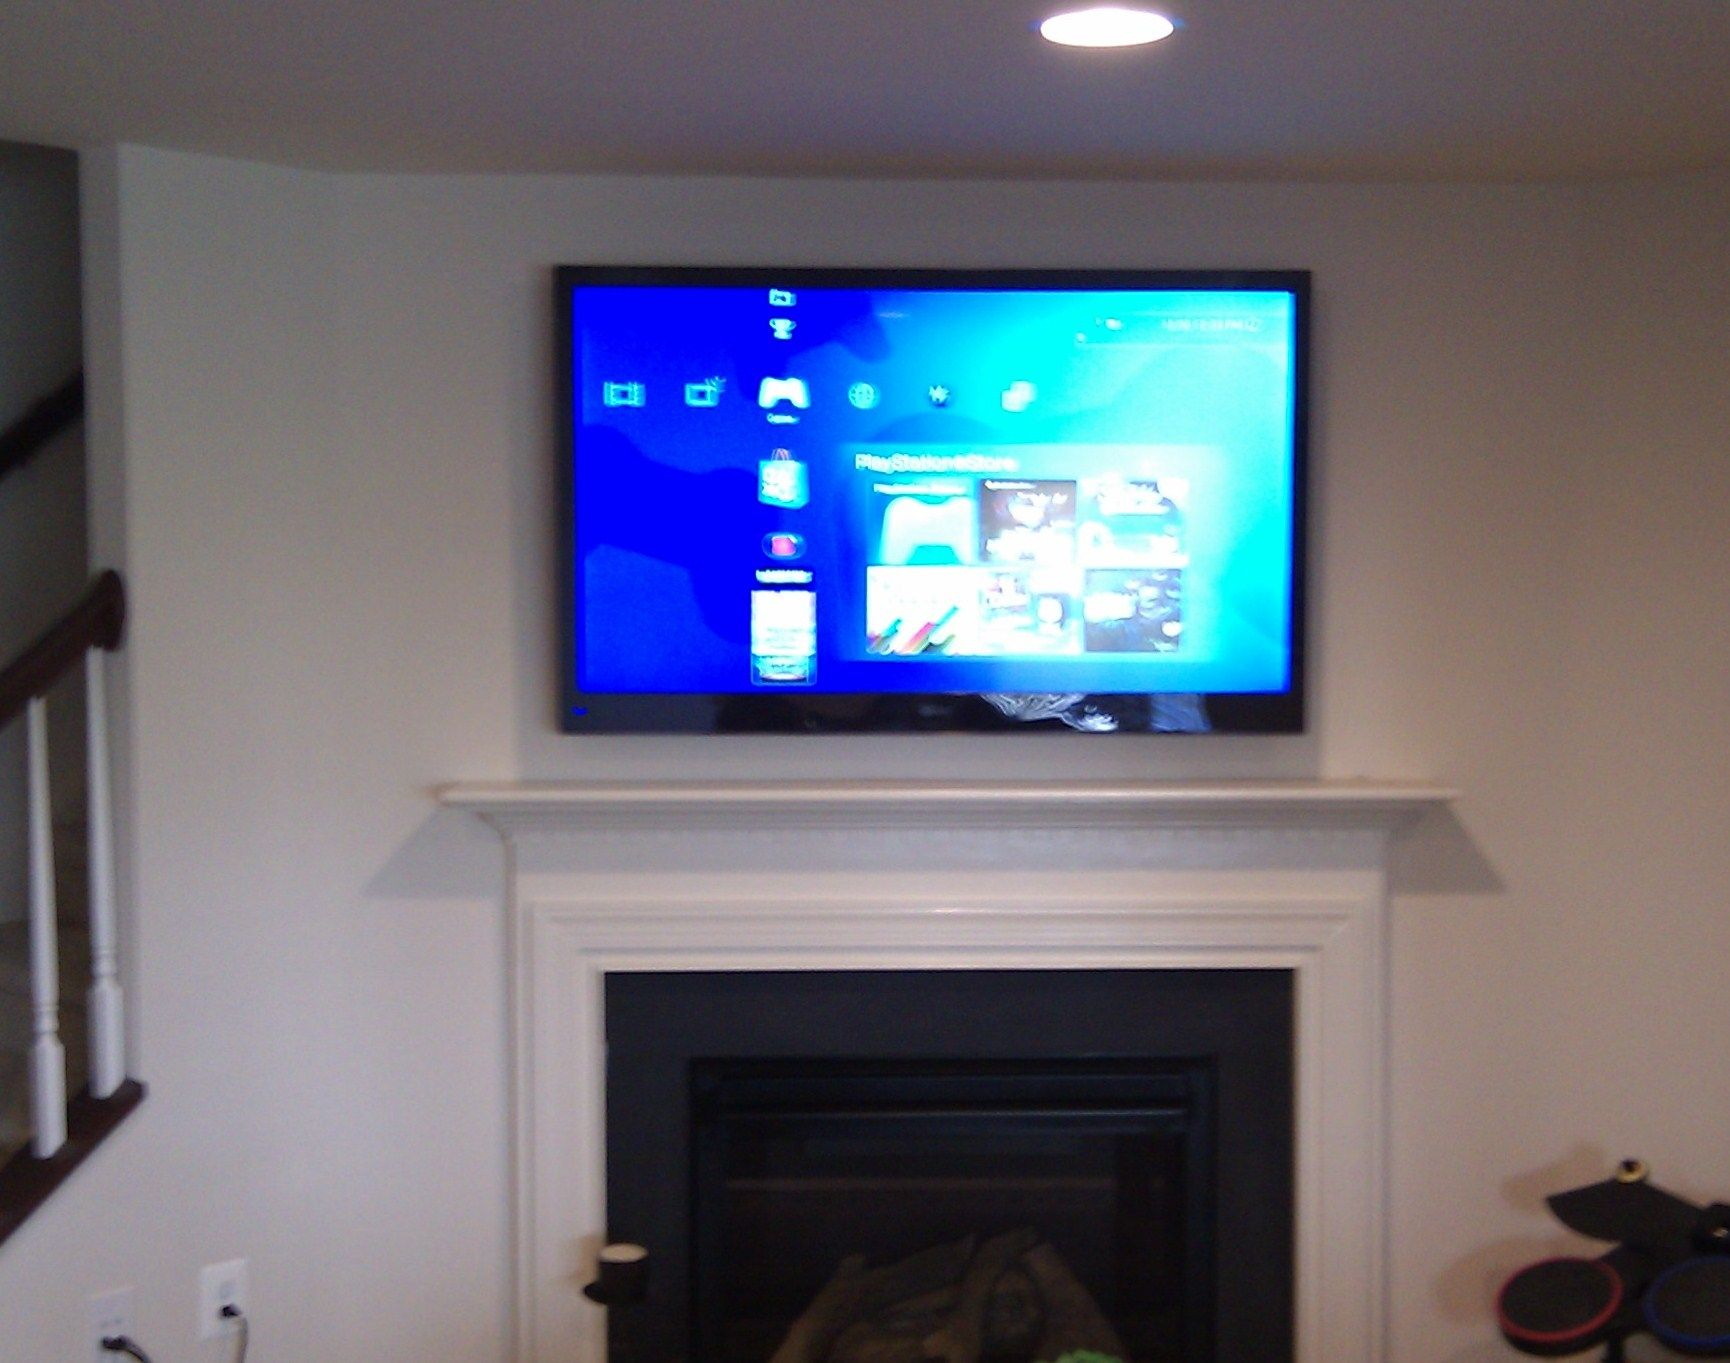 Tv Installation Over A Fireplace With Wires Concealed In The Wall By Flat Screen Above Wiring Mike Philadelphia Pa